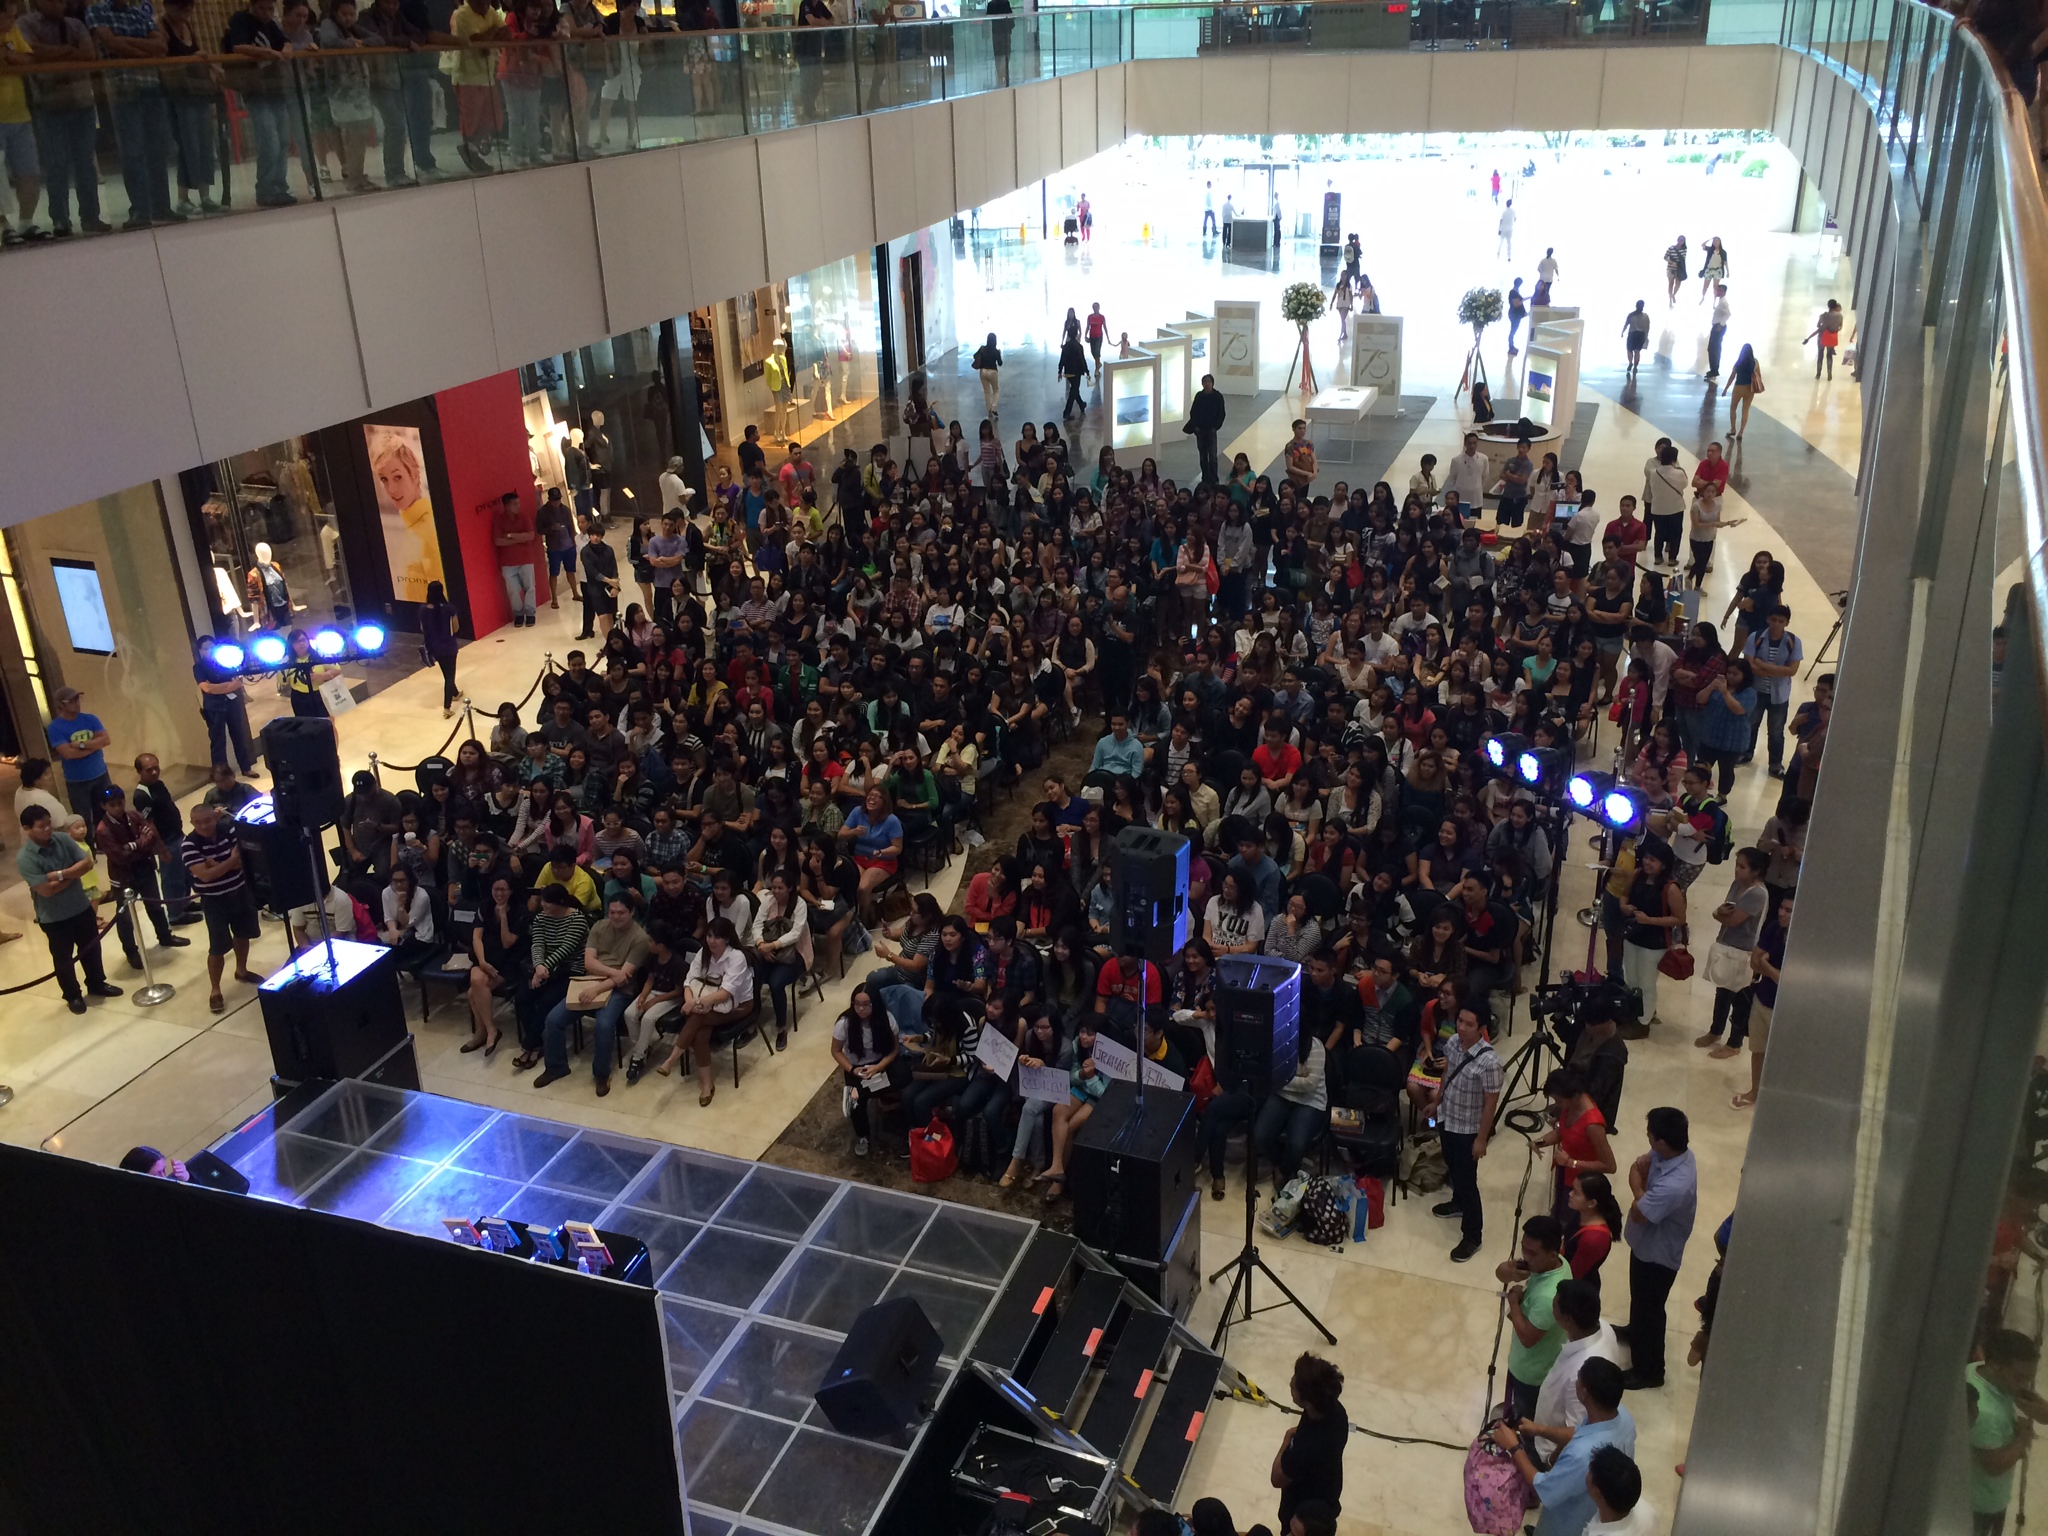 Mall crowd view 2